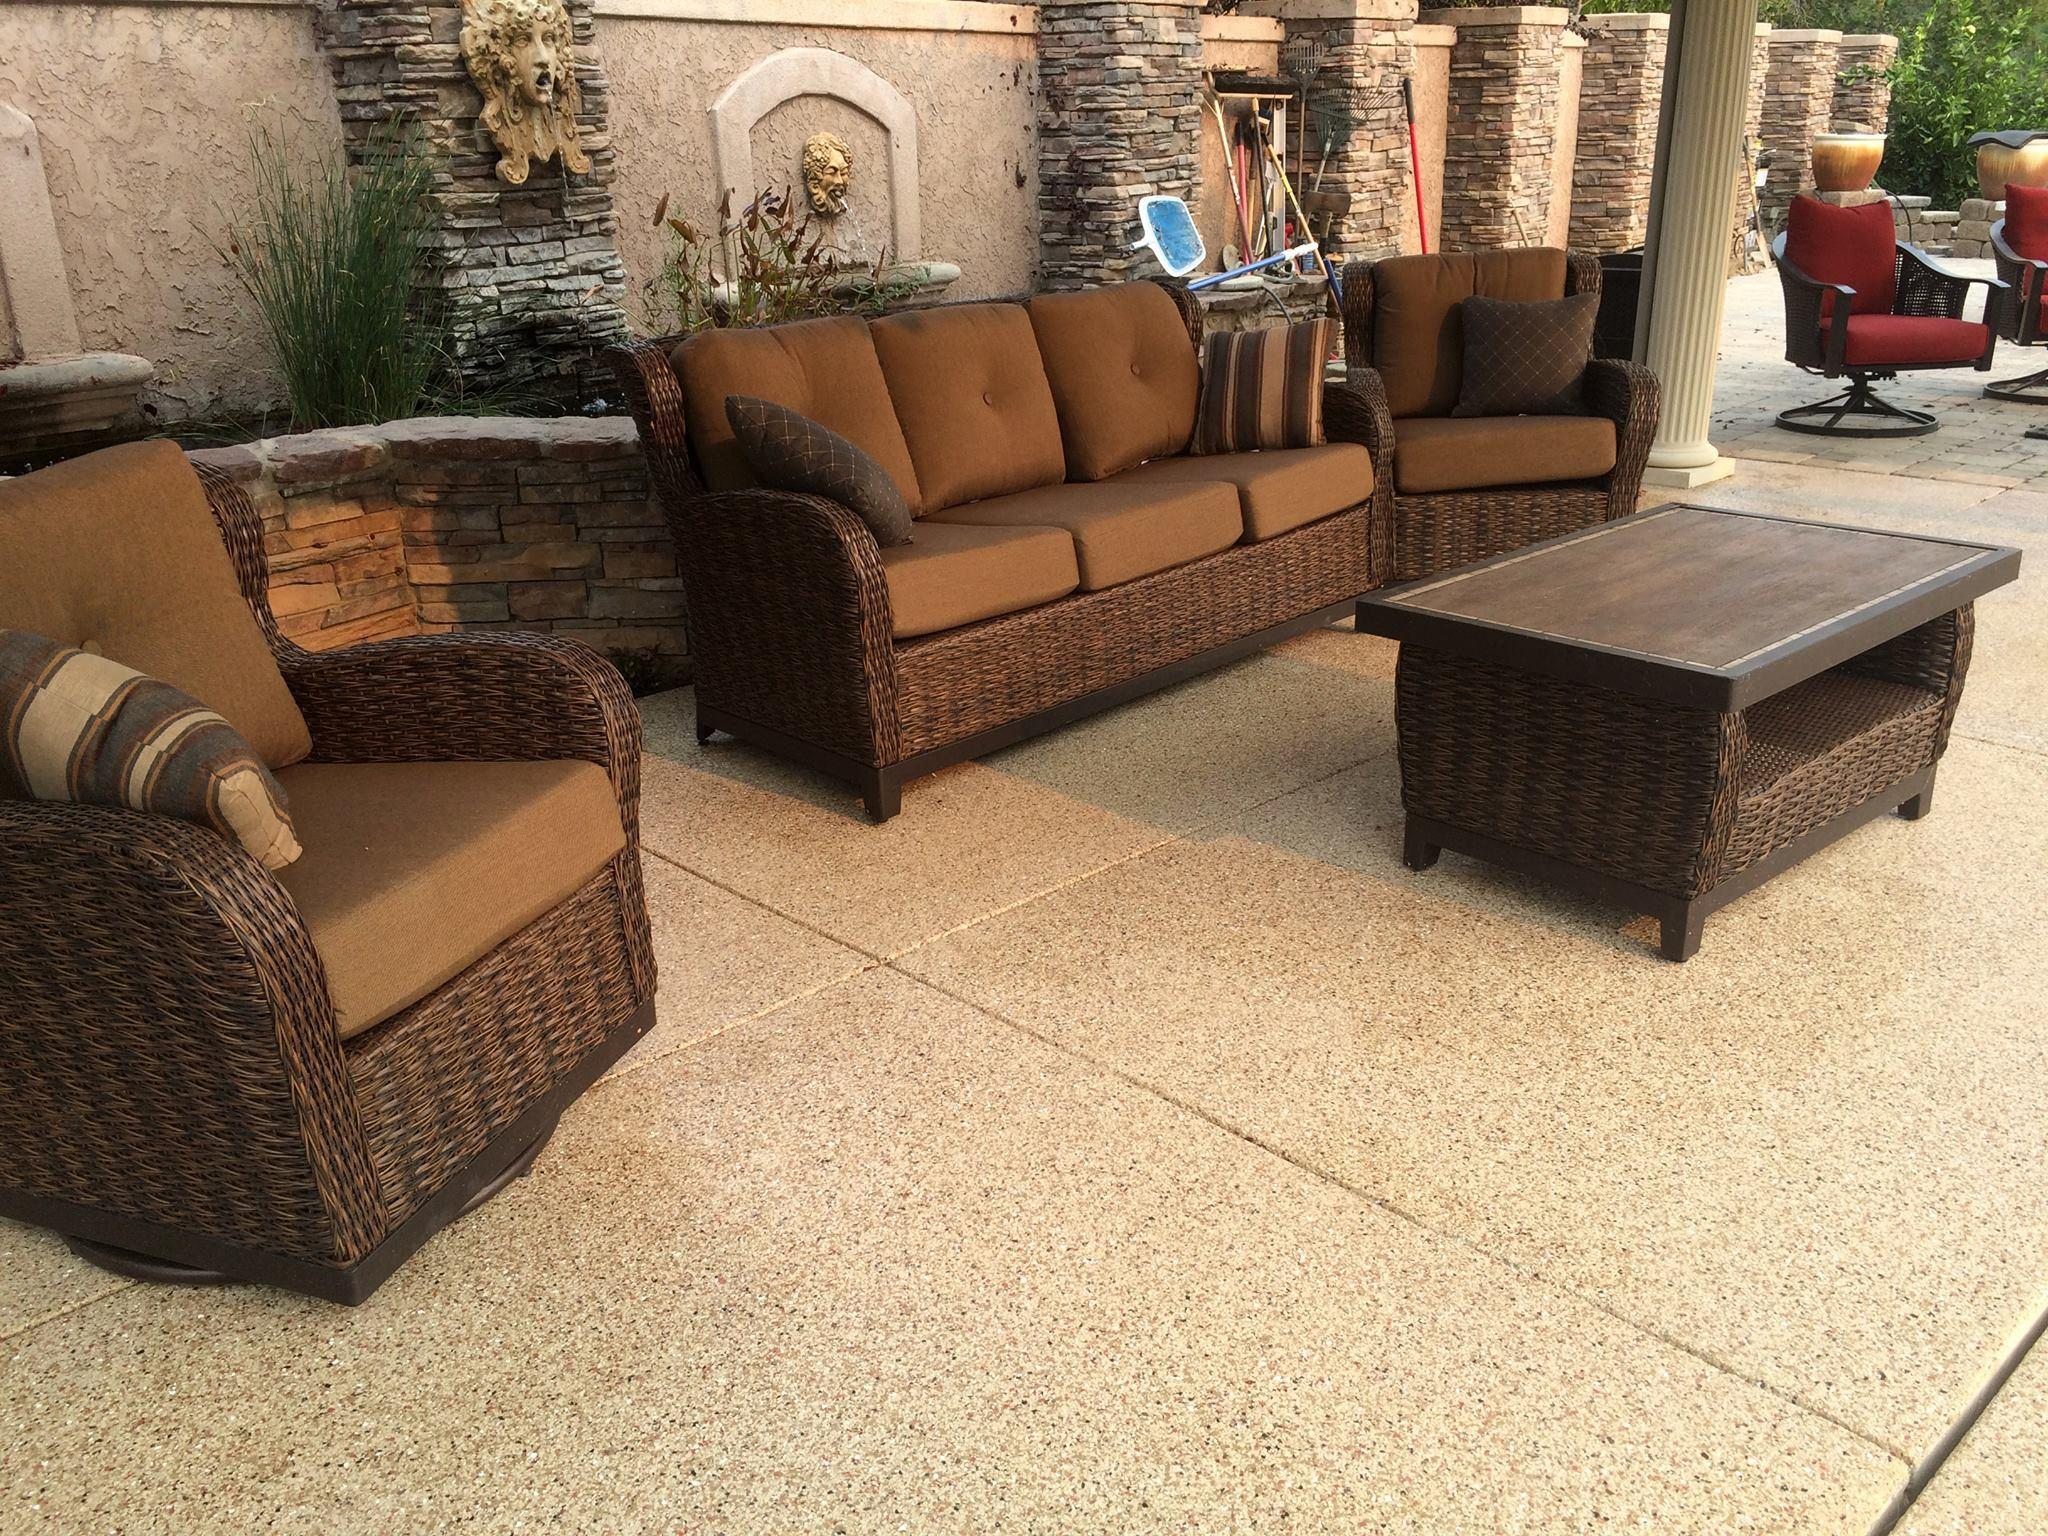 Lone Star Patio and Outdoor Living, LLC image 10